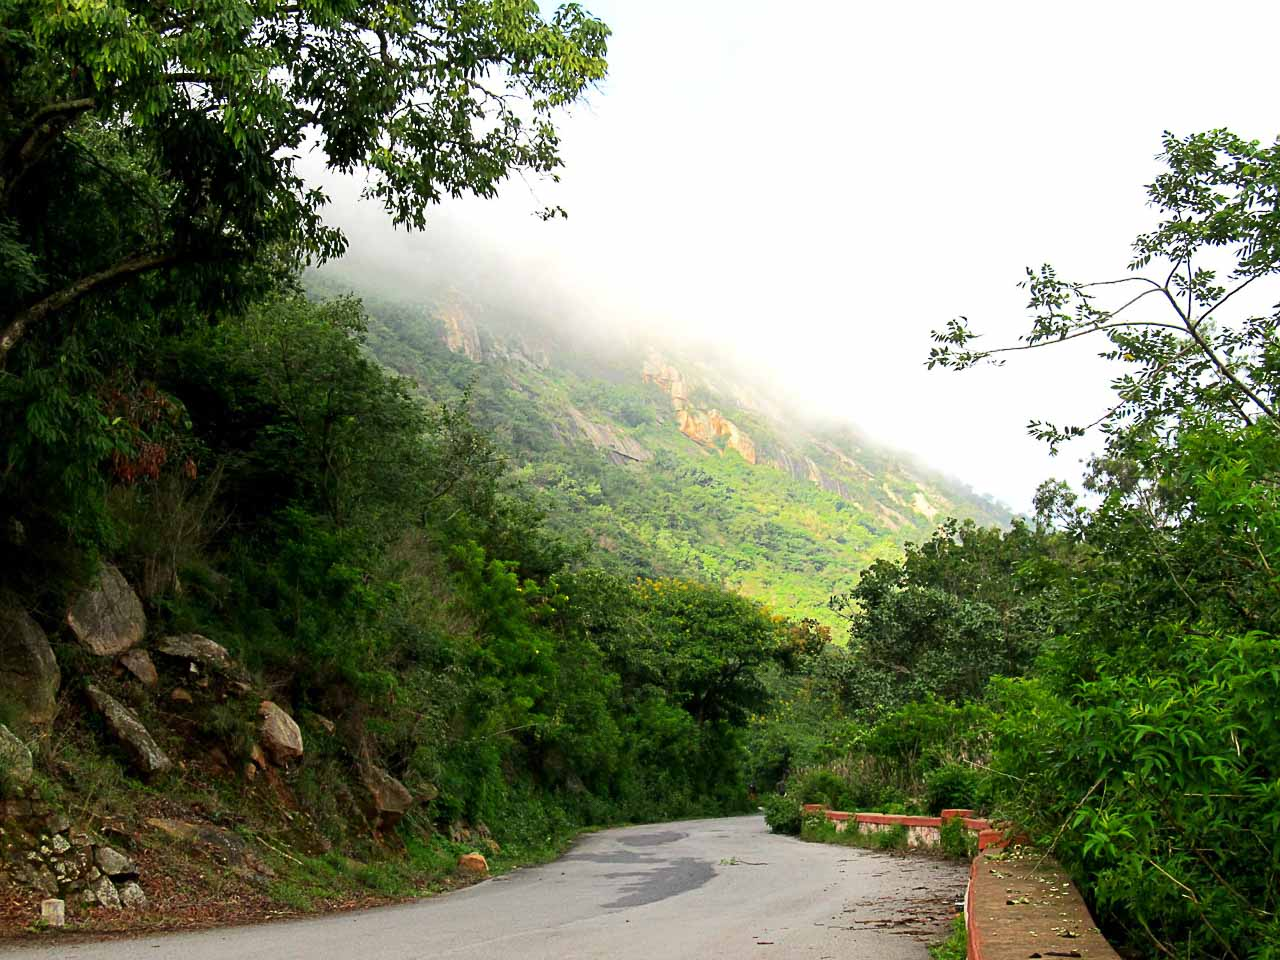 The Nandi hills is one of the top places to visit in Bangalore, add it to your morning itinerary and get a bit of fresh air.